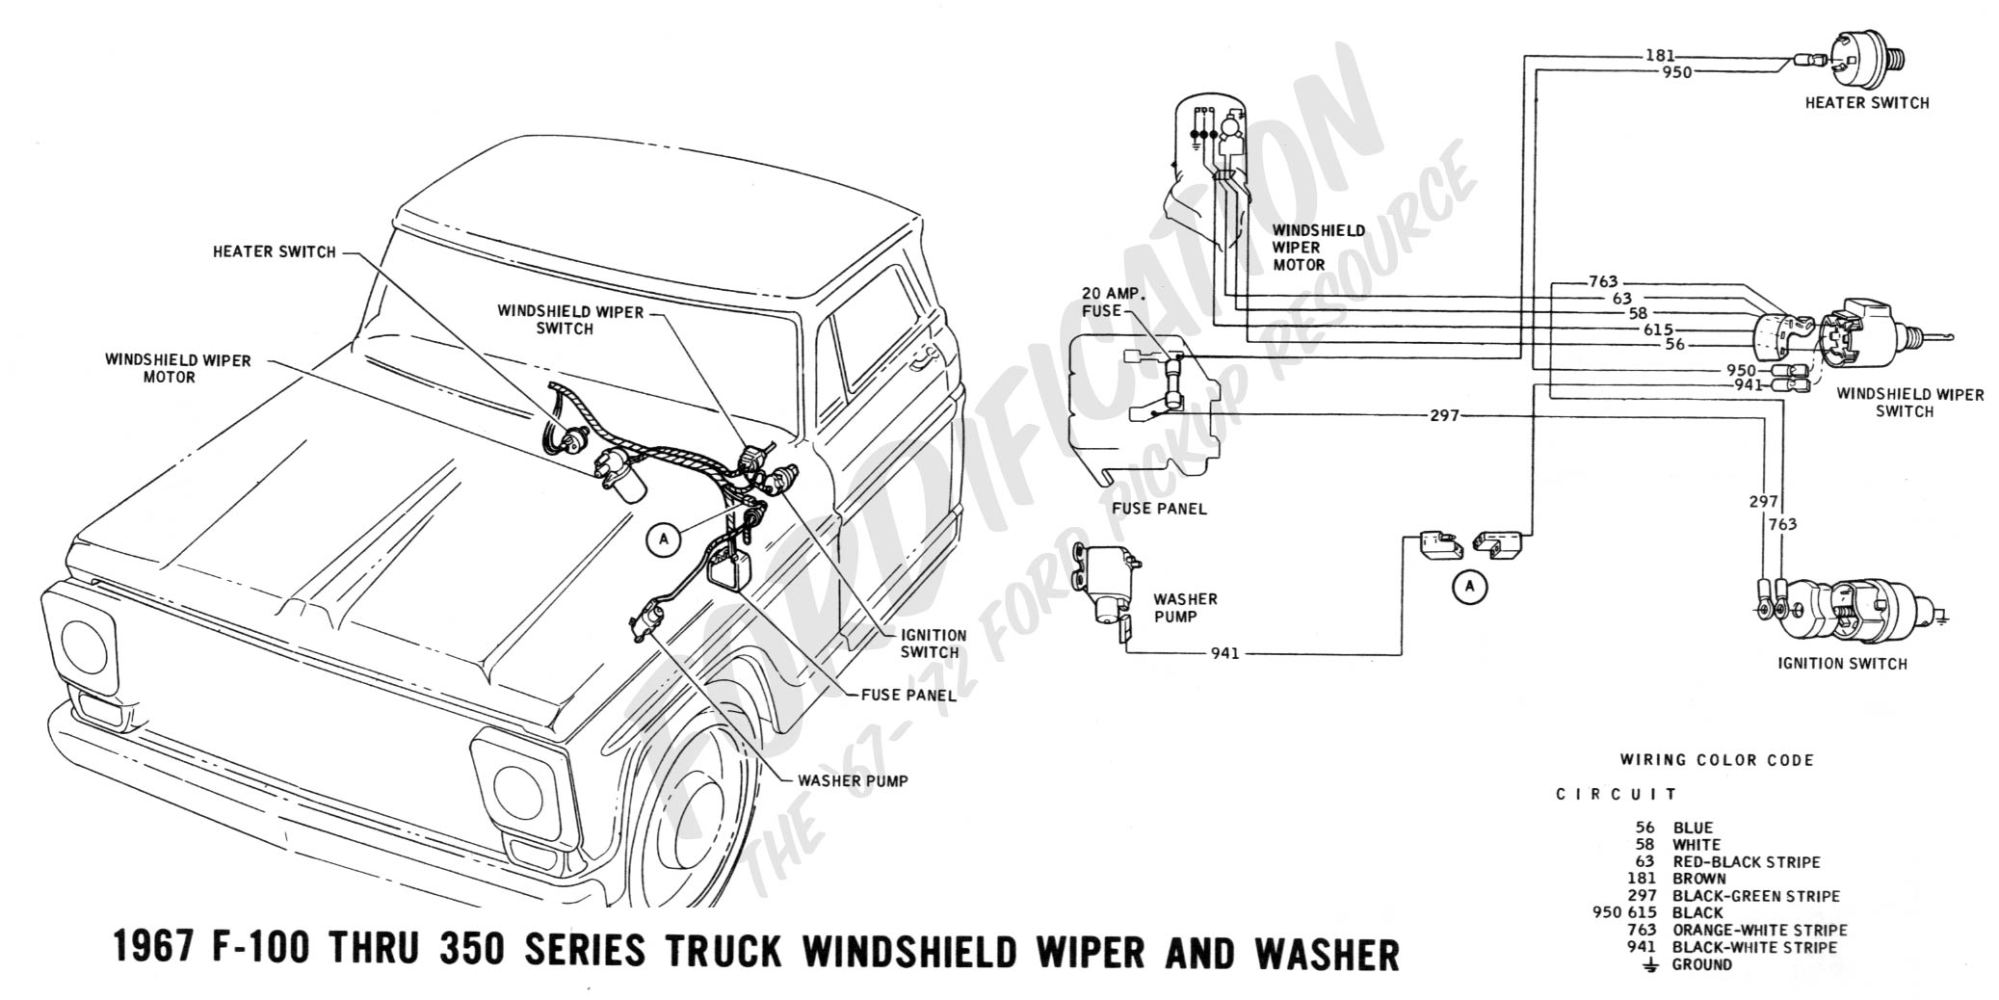 83 Chevy Wiper Motor Wiring Diagram Gmc 1977 Chevrolet Pickup Get Free Image About Hight Resolution Of Truck Wipers Download Ford Control Module